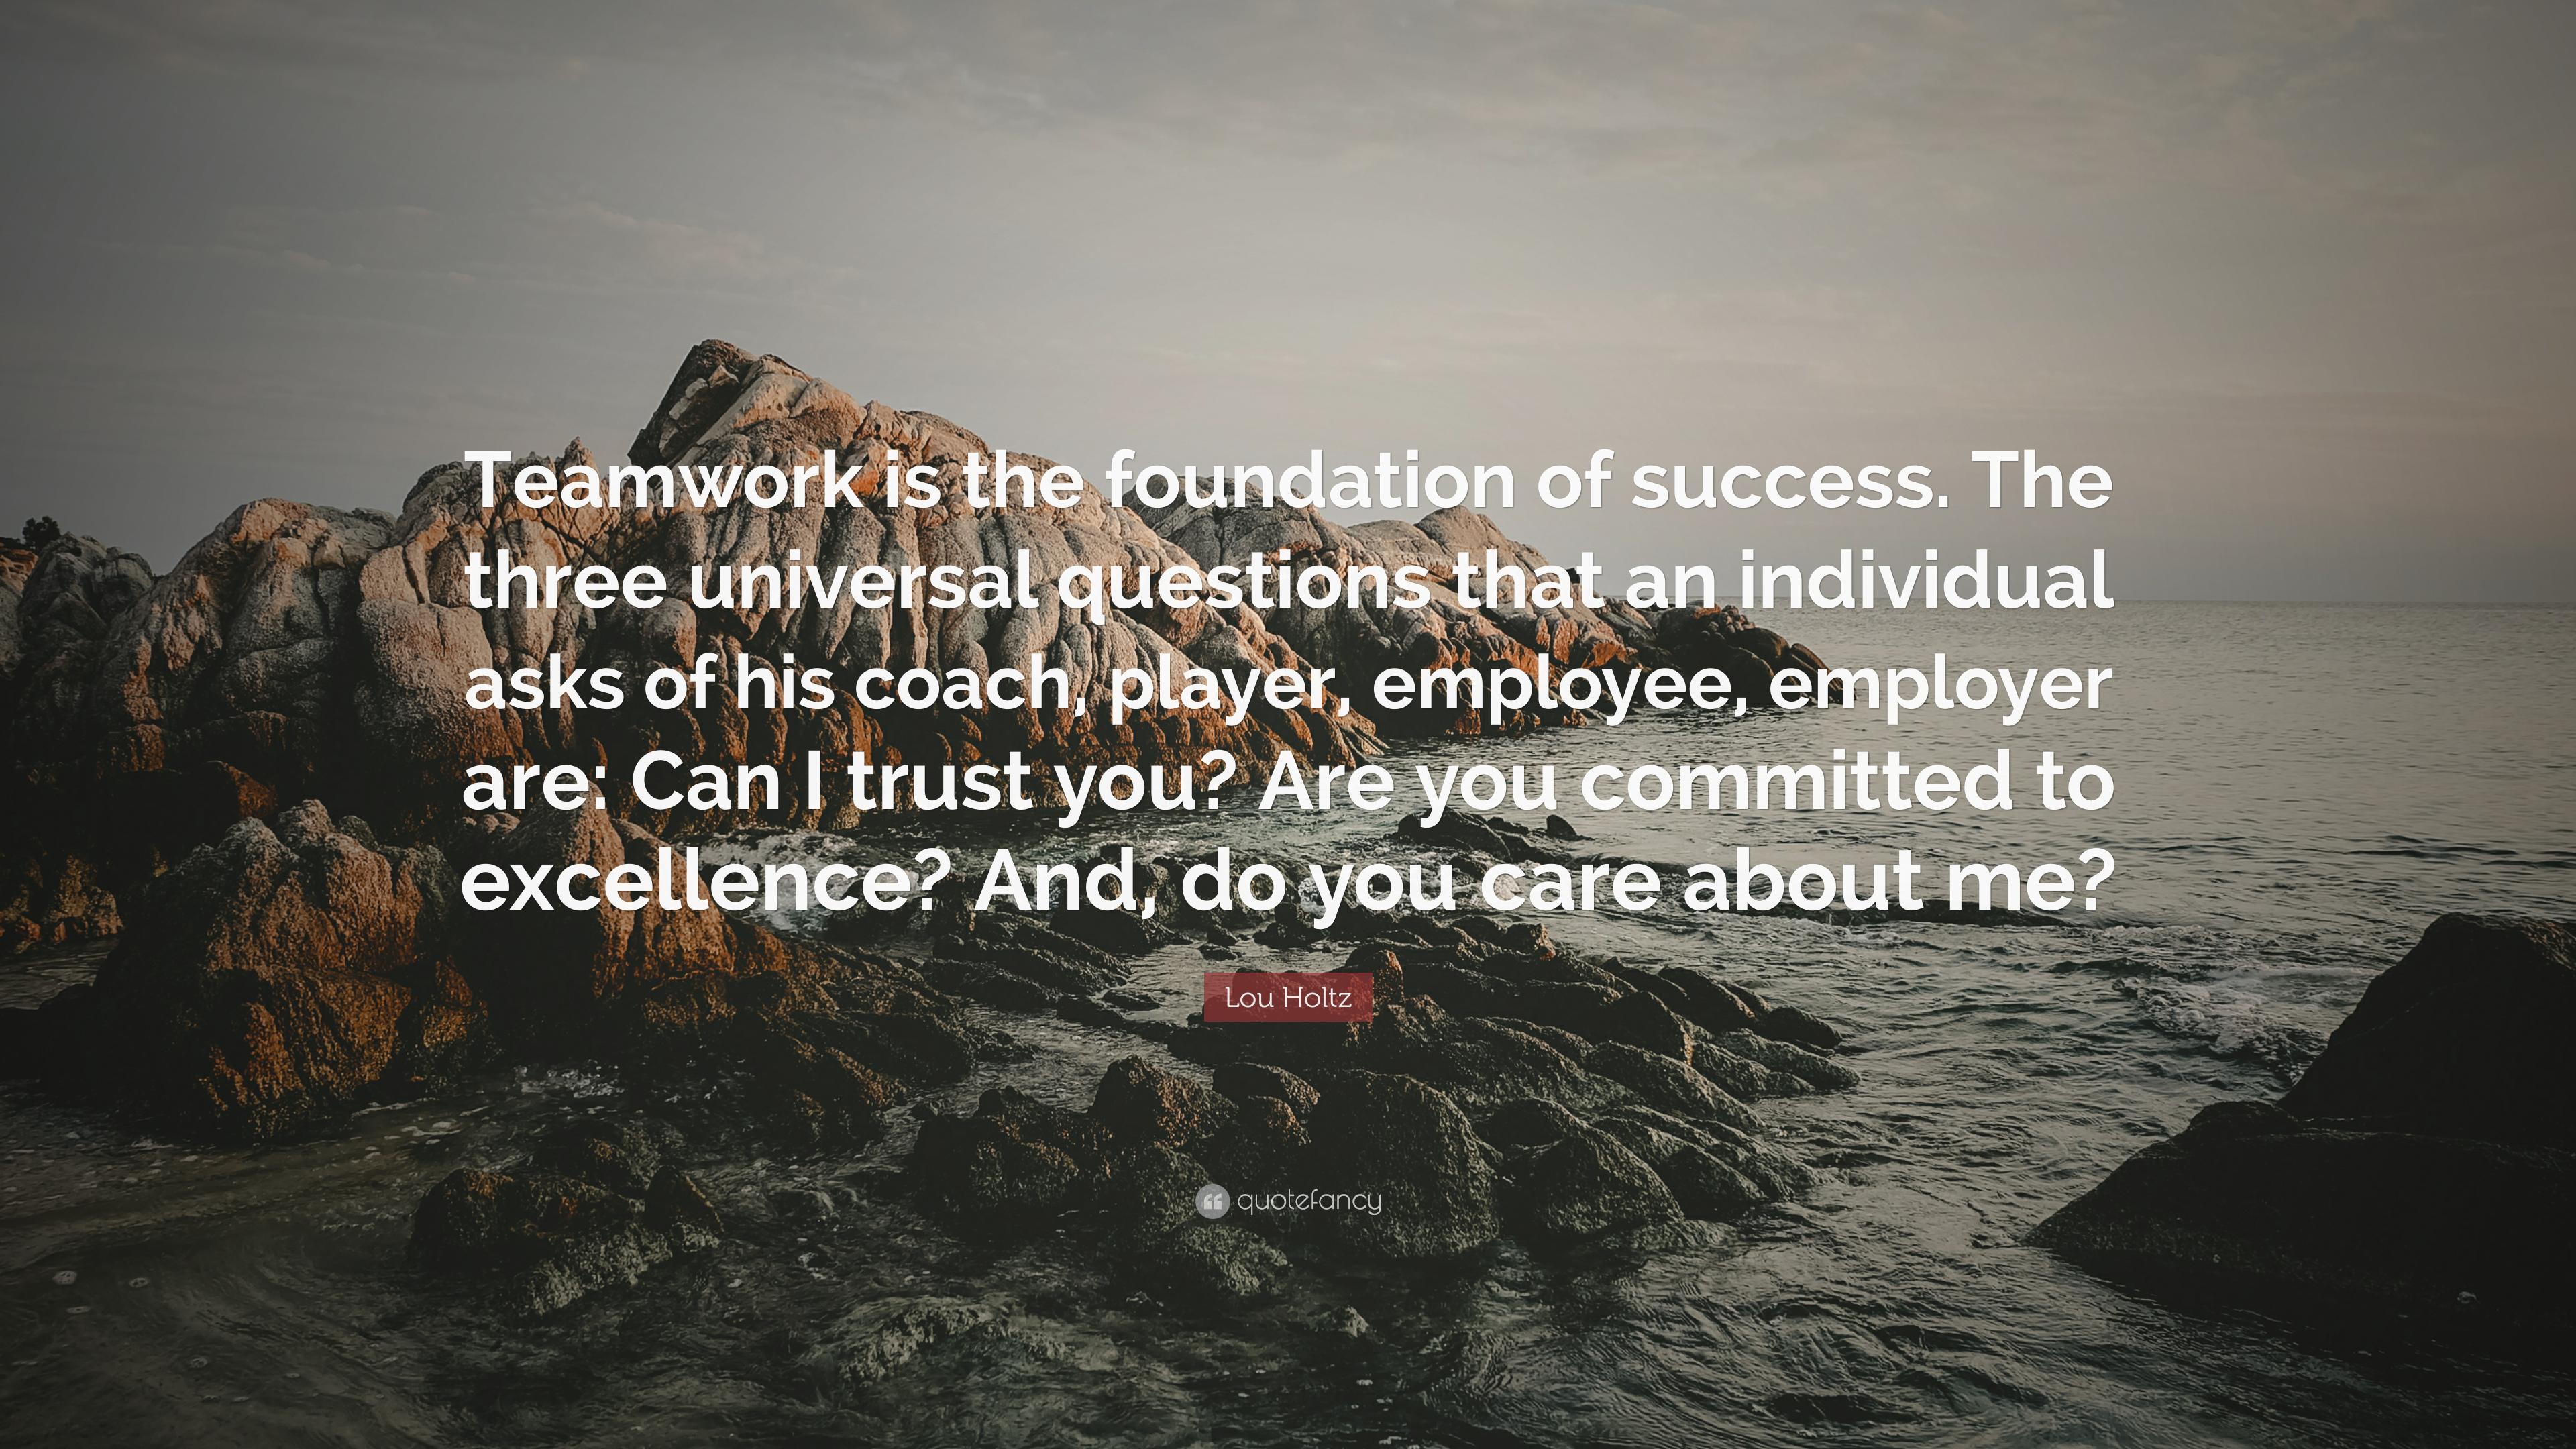 Football Coach Quote Wallpaper Lou Holtz Quote Teamwork Is The Foundation Of Success